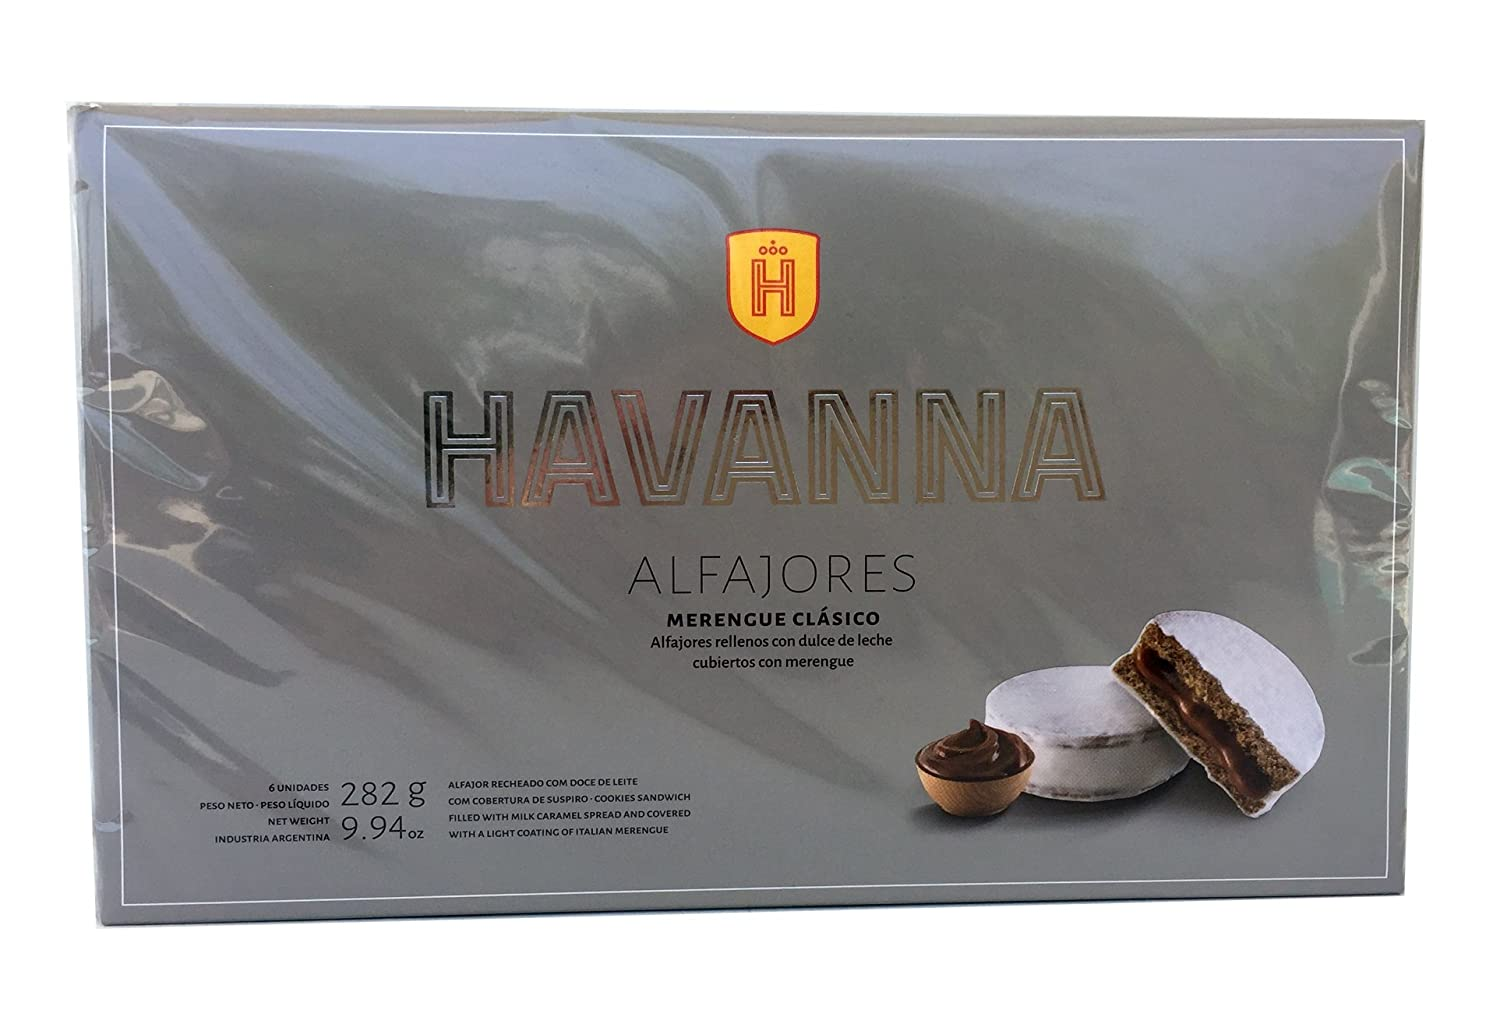 Amazon.com : havanna alfajores merengue clasico x 6 : Grocery & Gourmet Food